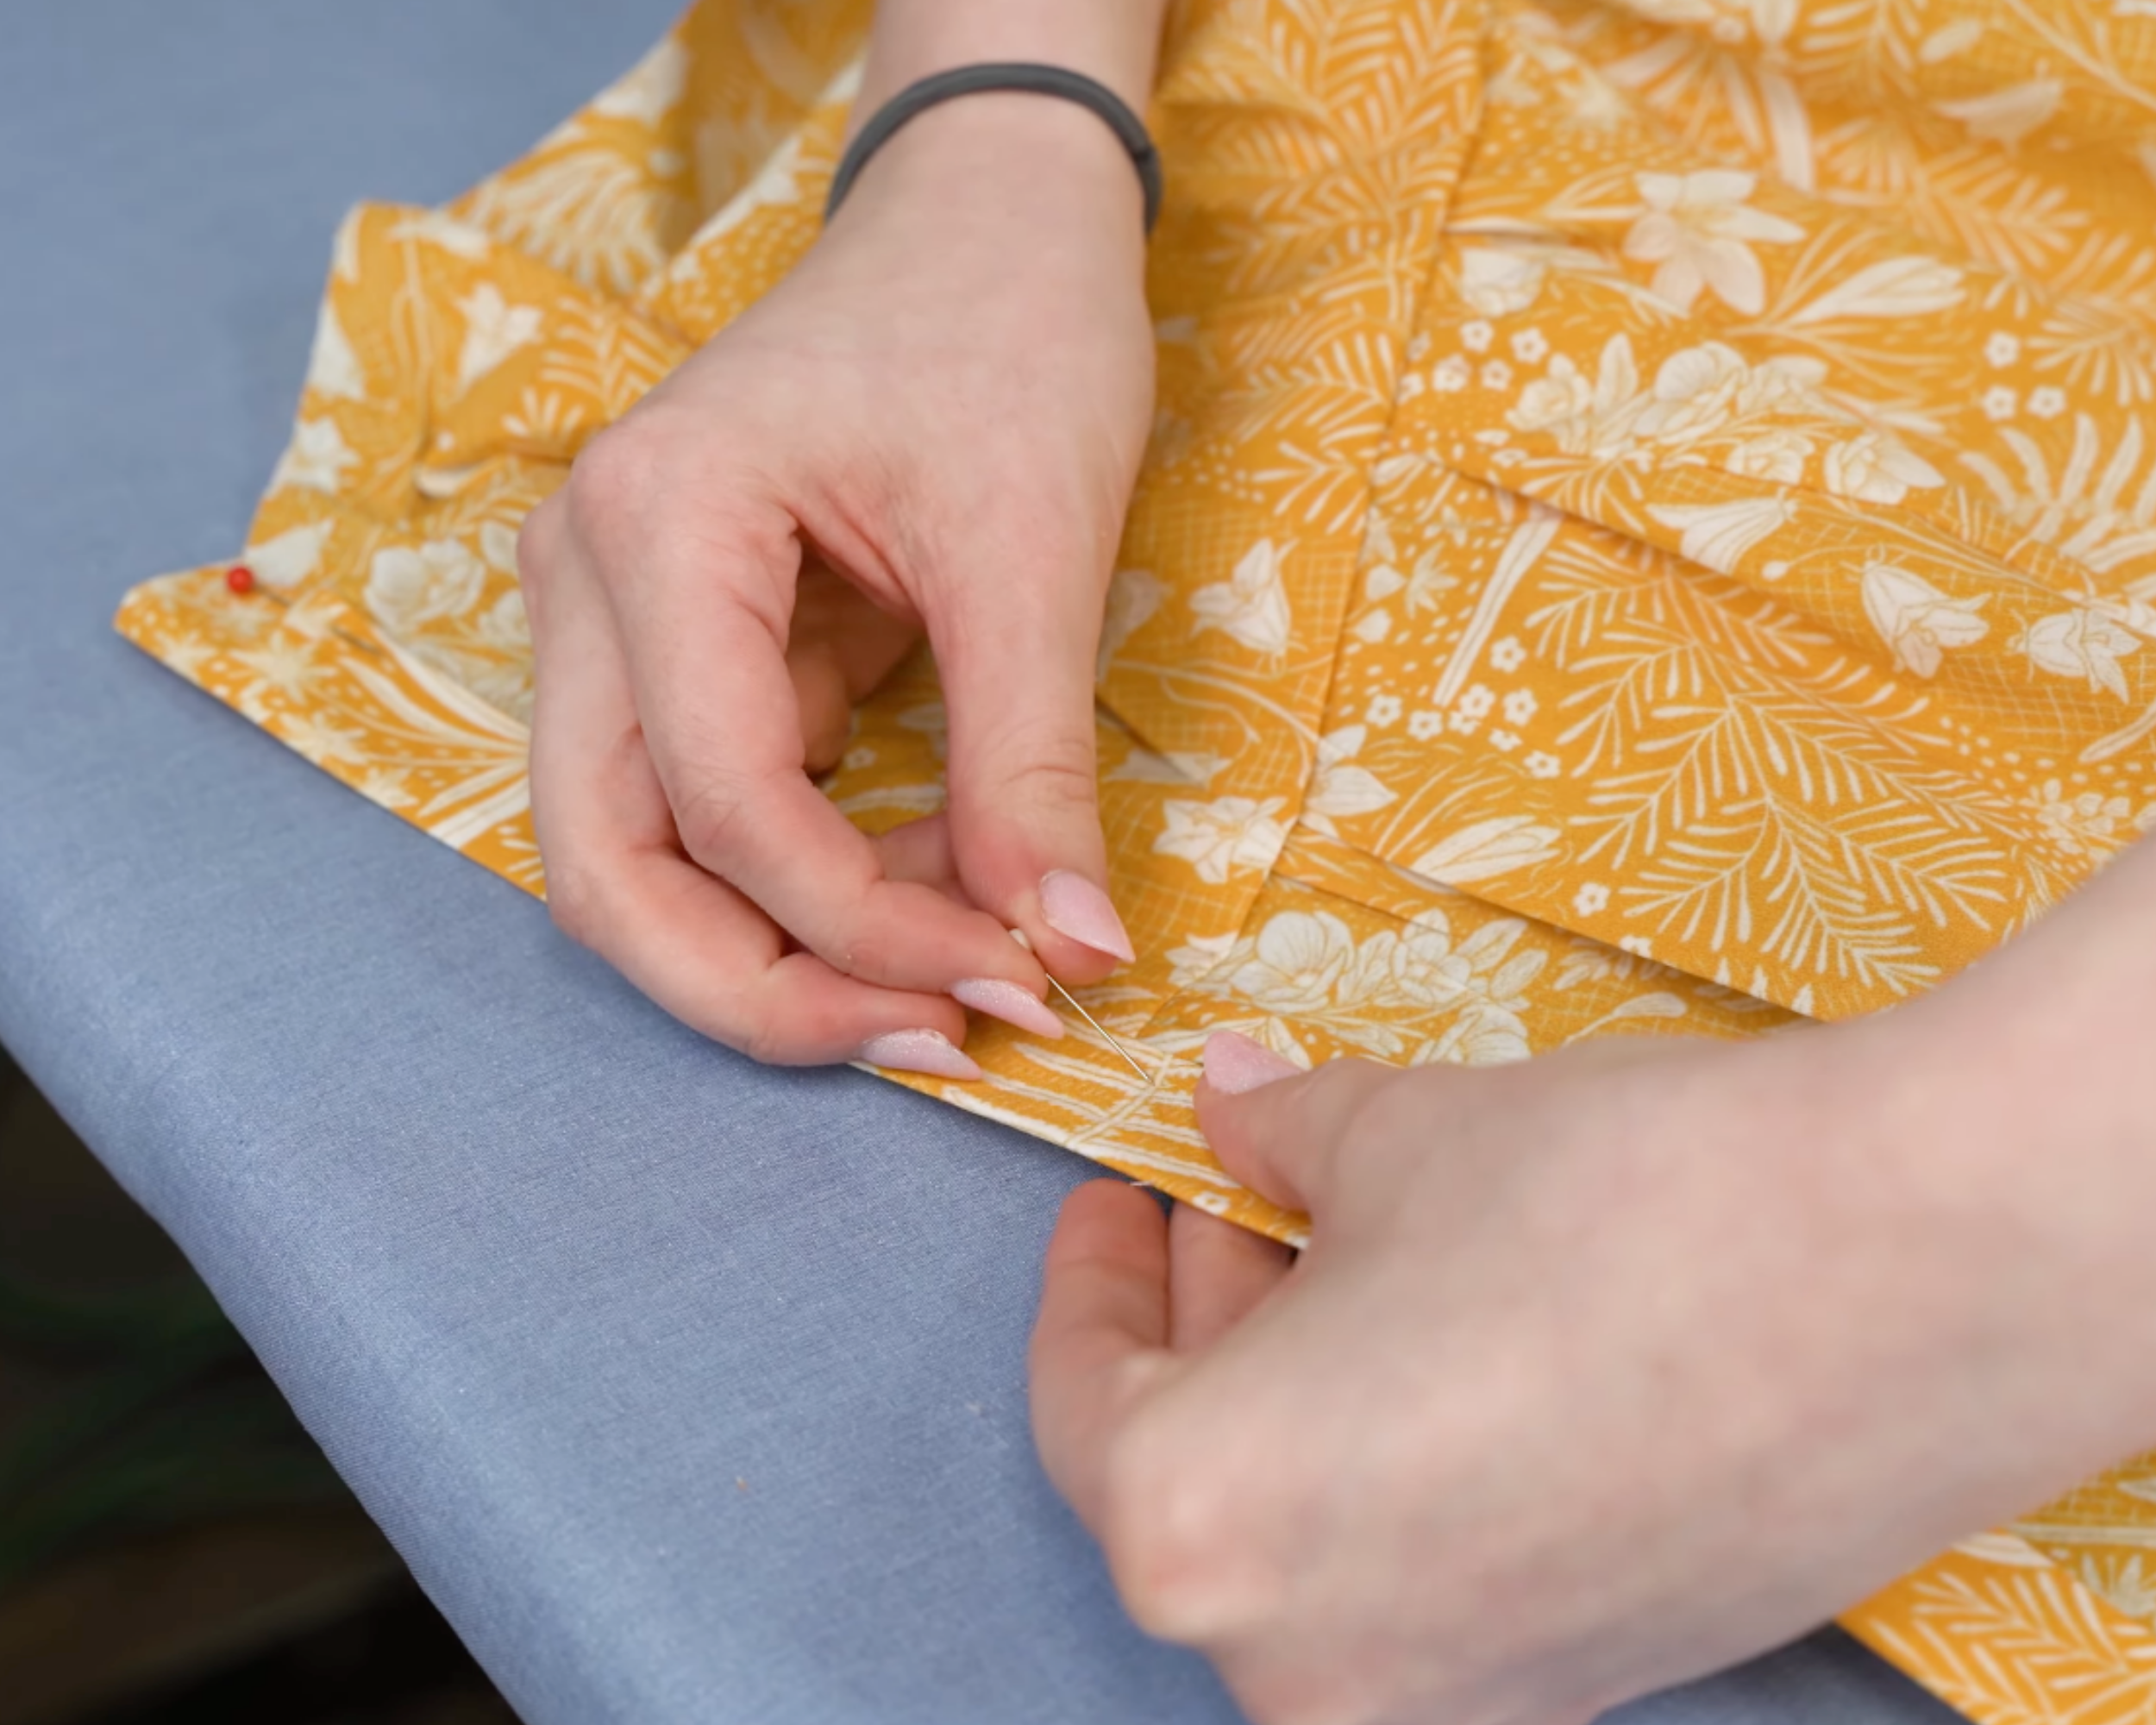 Attaching plackets to dress